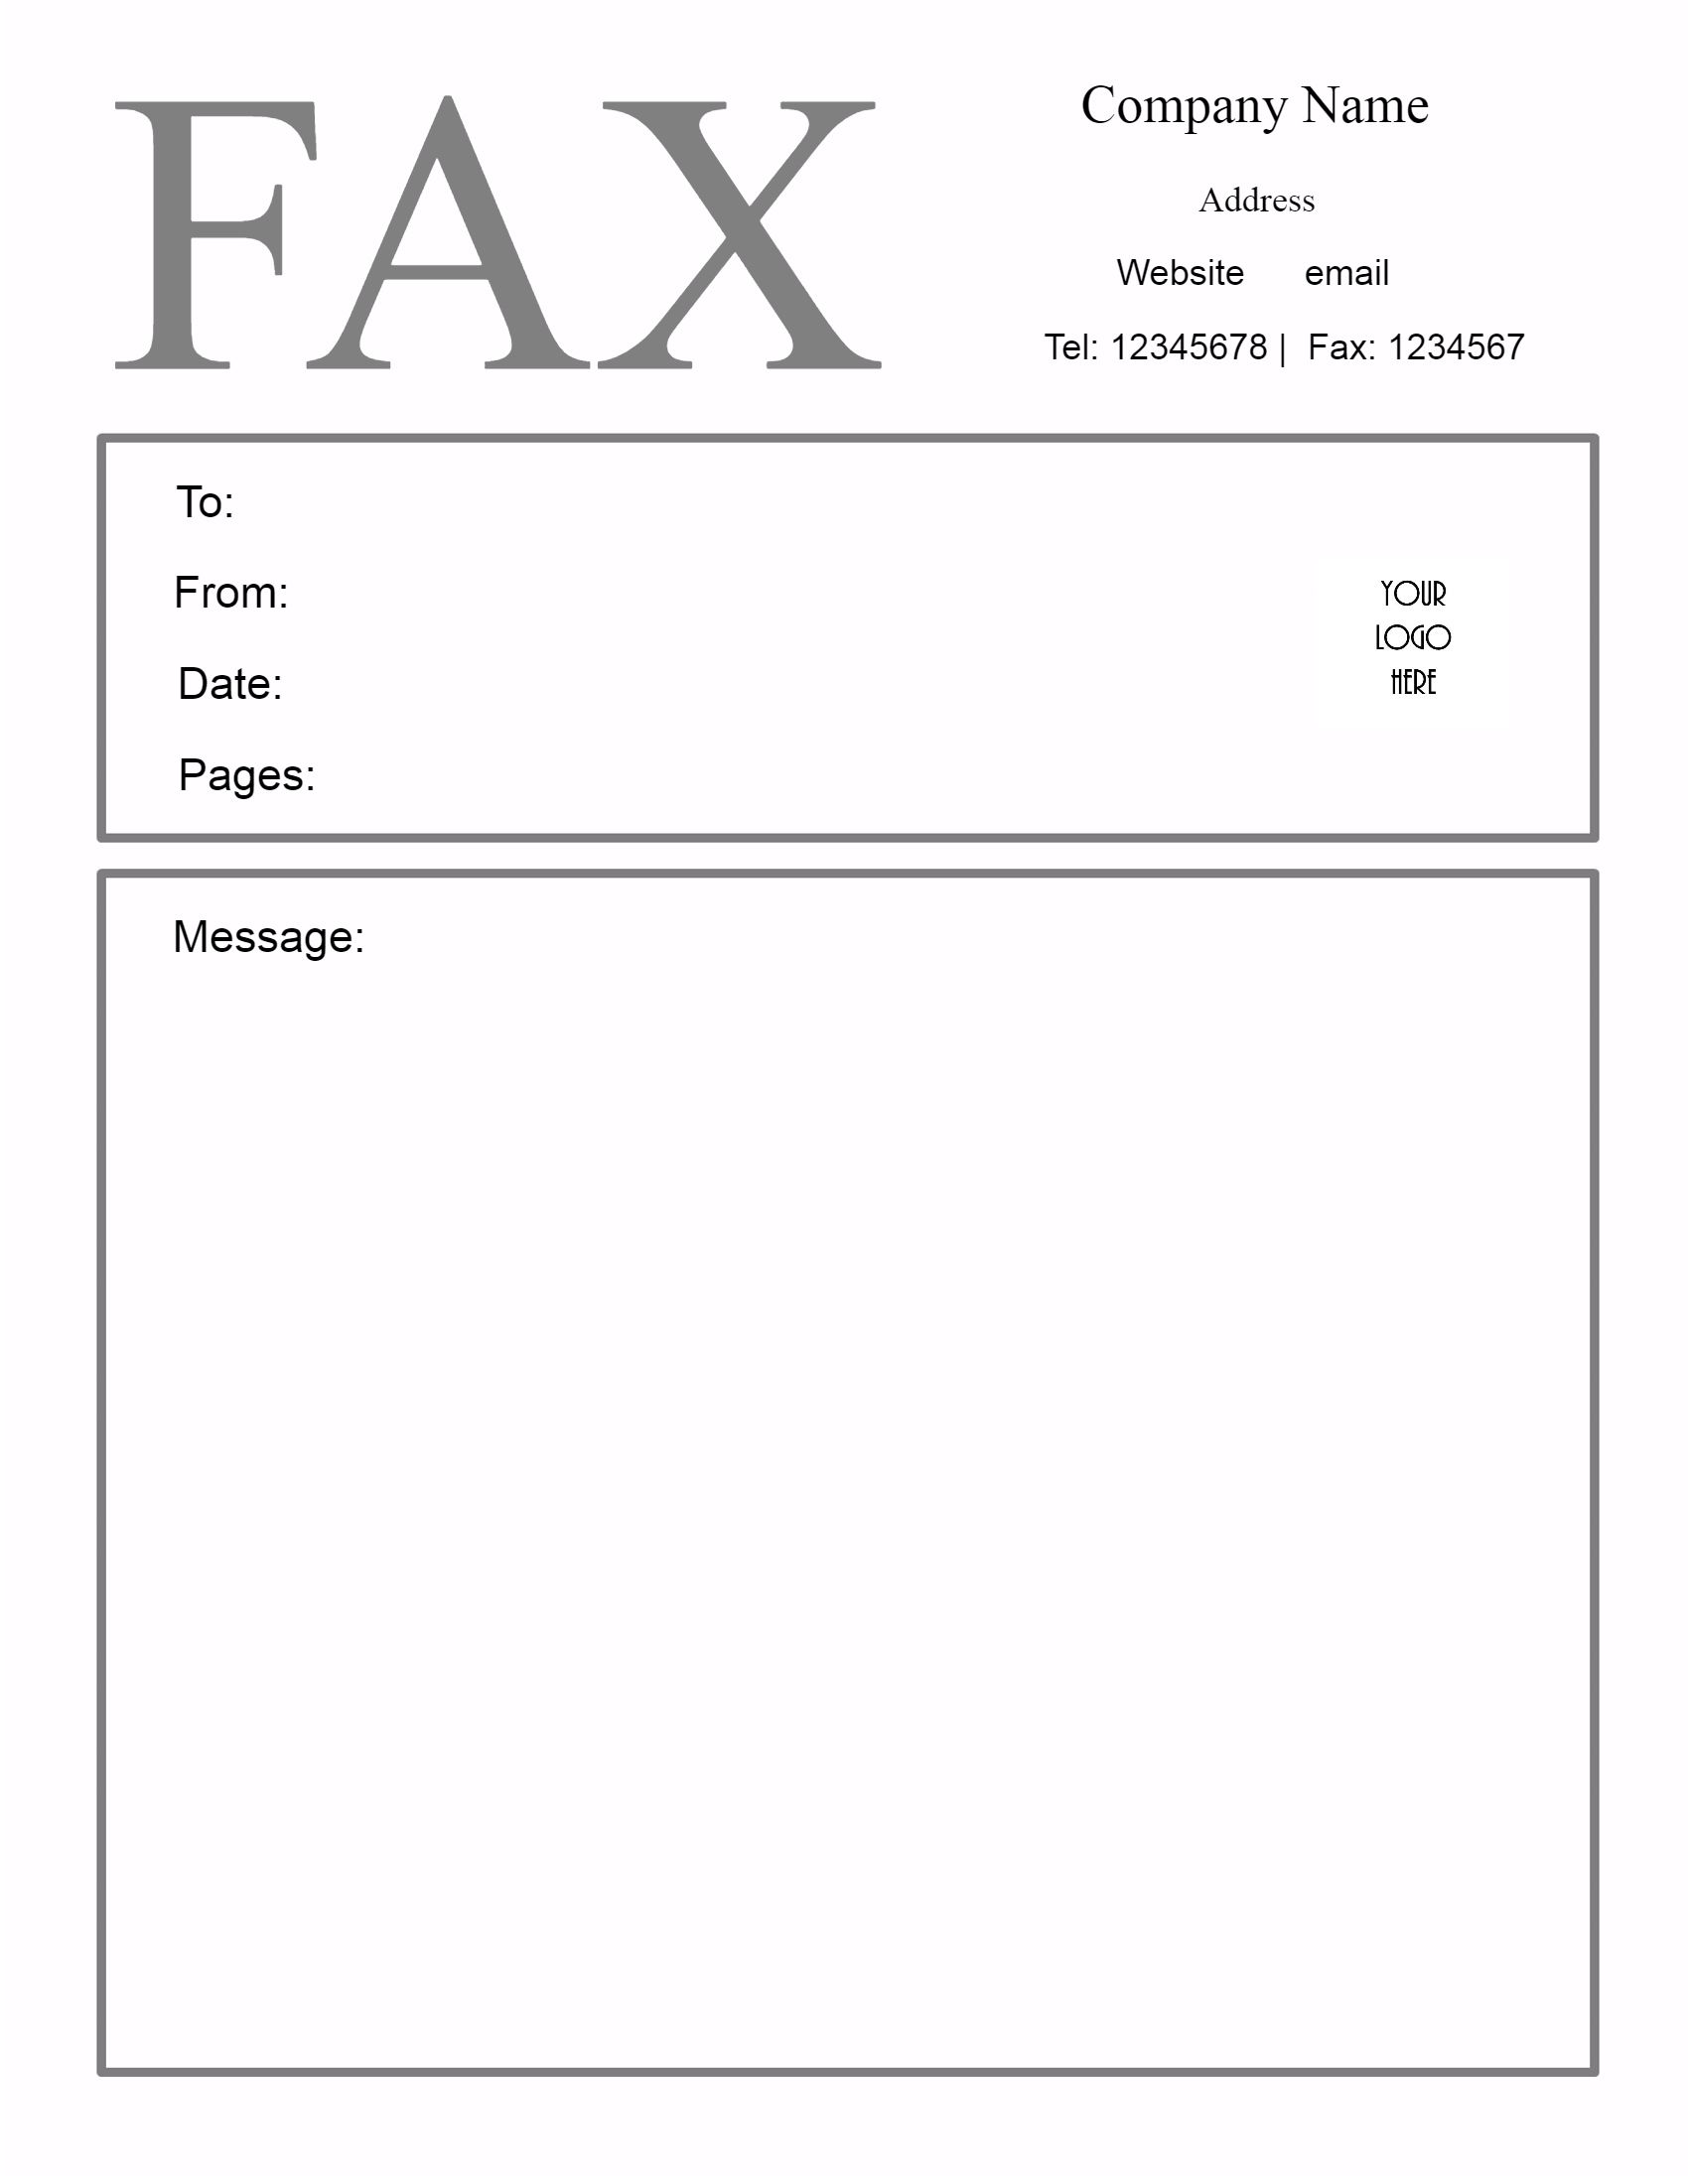 image regarding Printable Fax Cover Sheets known as No cost Fax Go over Sheet Template Personalize On the internet then Print